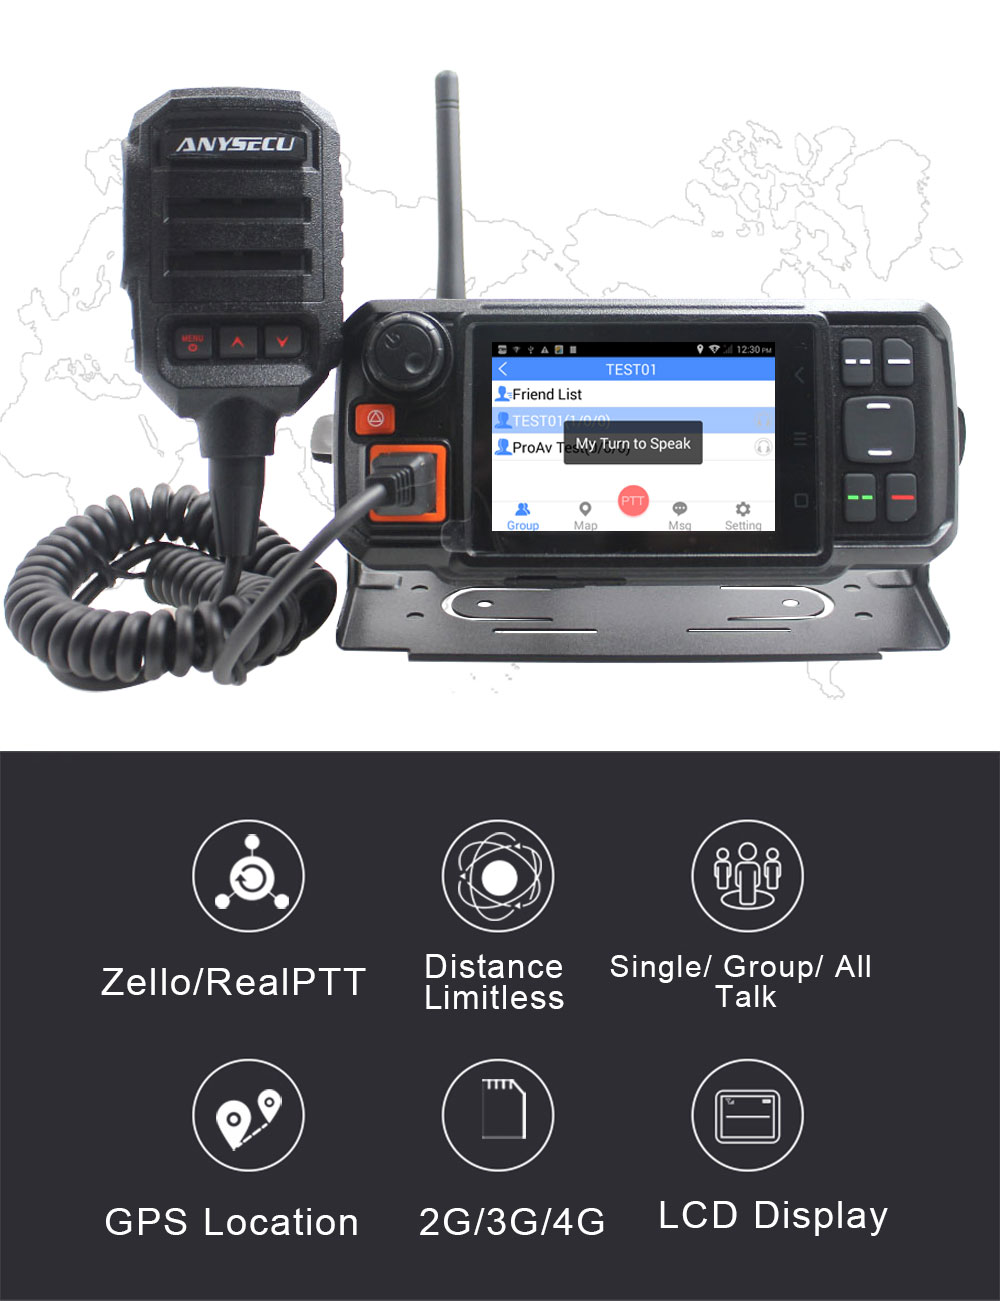 4G LTE Network Radio N60plus 4G-W2plus Android System RAM+ROM 1GB+8GB MT6737M GPS Function work with Zello PTT enlarge